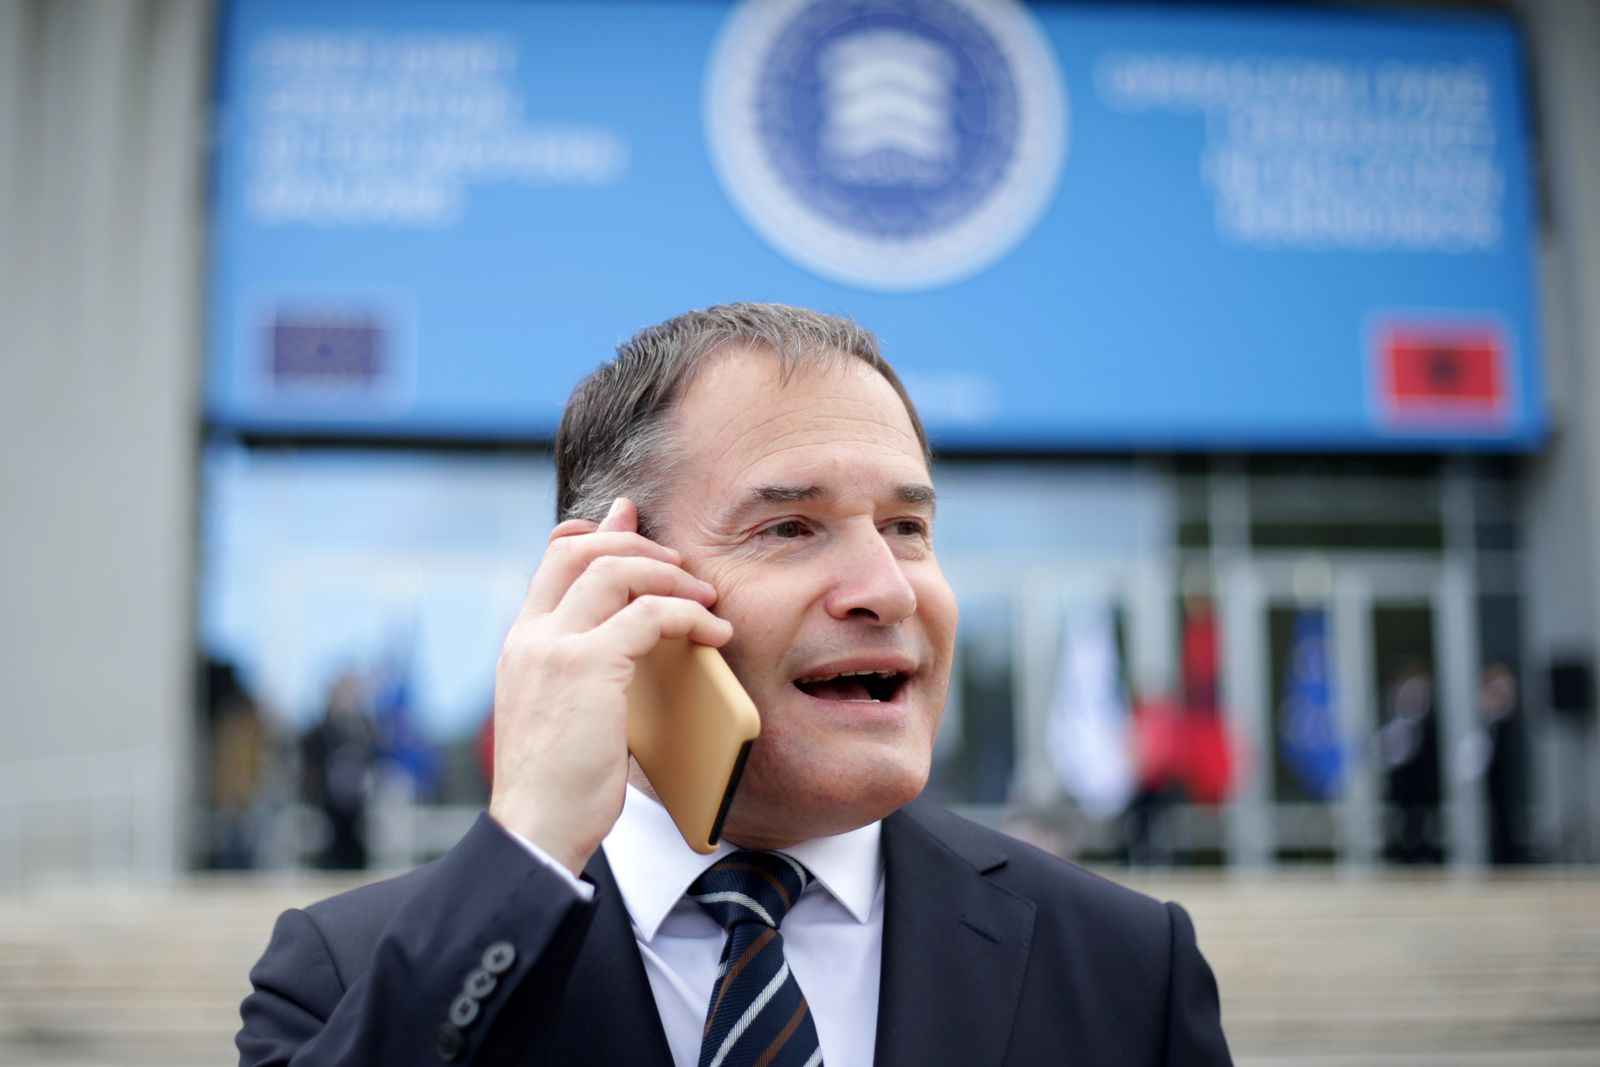 Frontex's Executive Director Fabrice Leggeri uses his phone before a meeting in Tirana